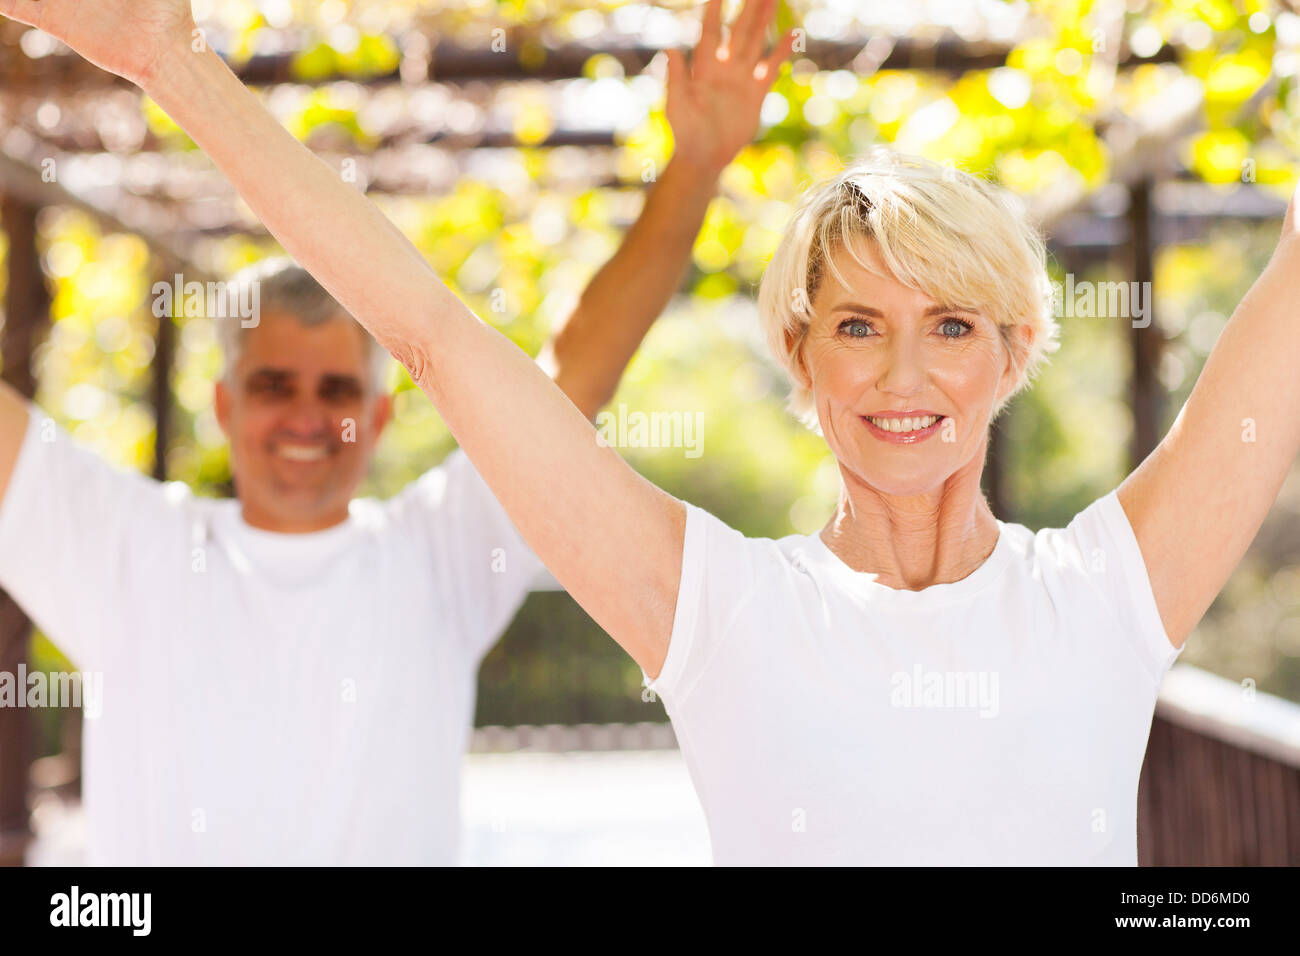 healthy senior couple working out outdoors - Stock Image